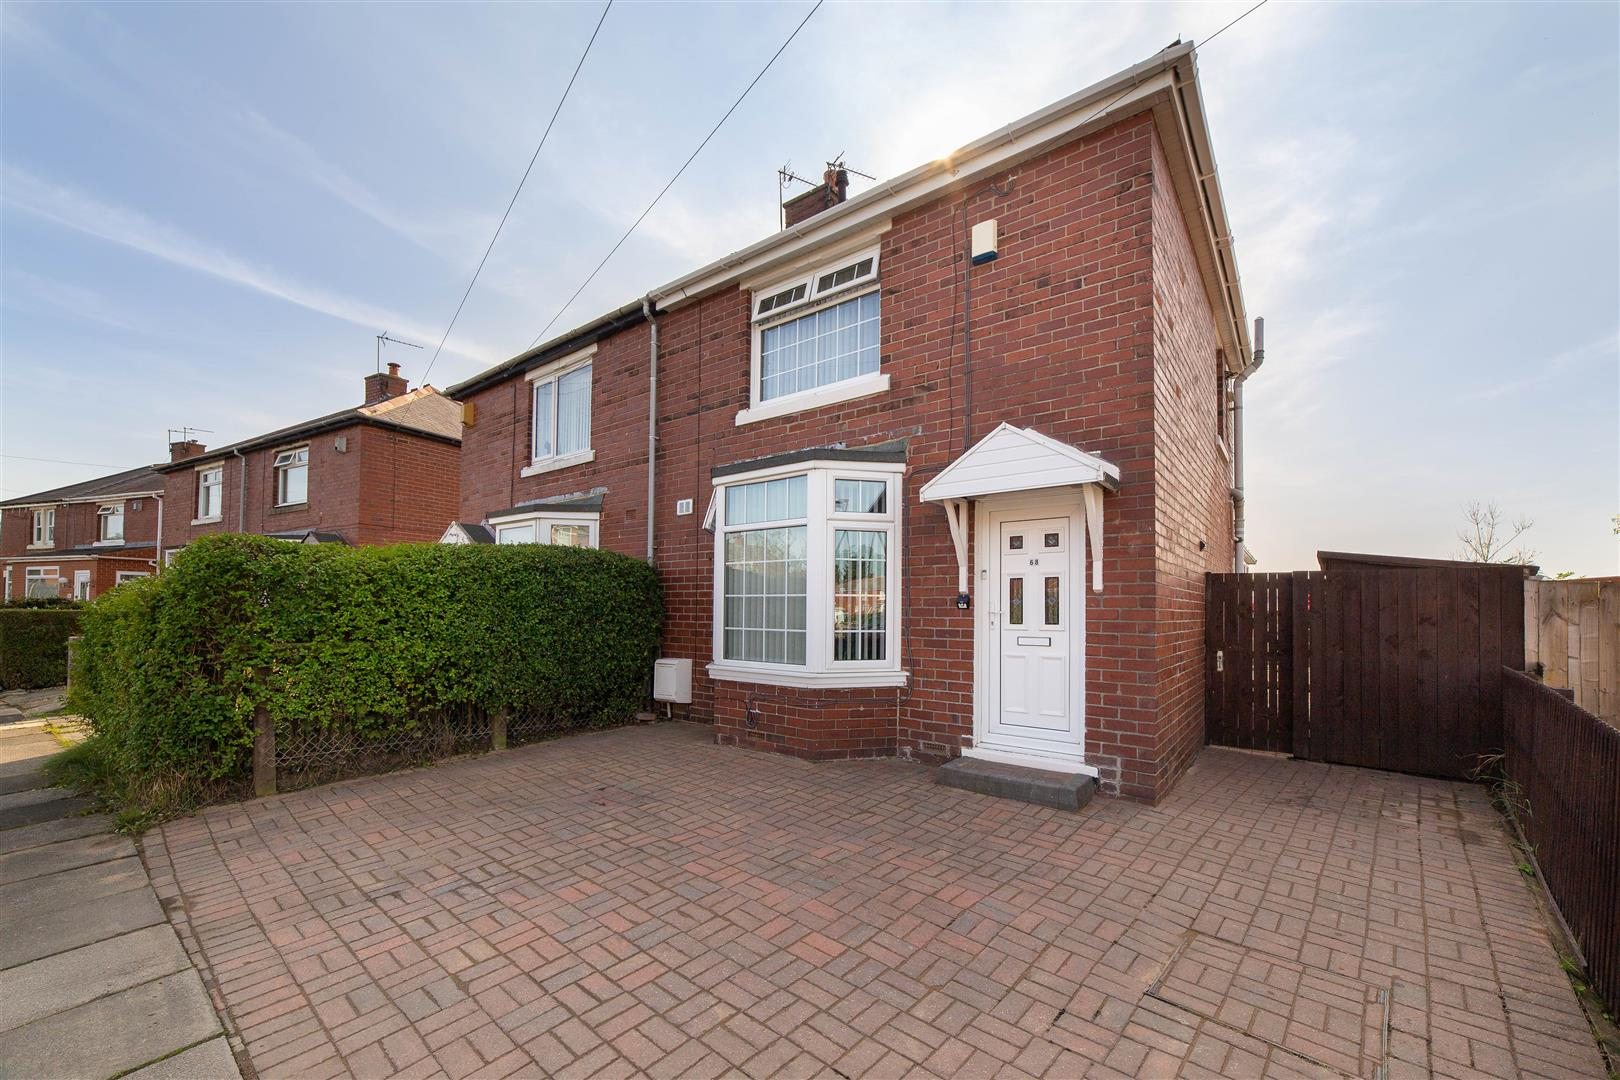 2 bed semi-detached house for sale in Wallsend, NE28 9ES, NE28